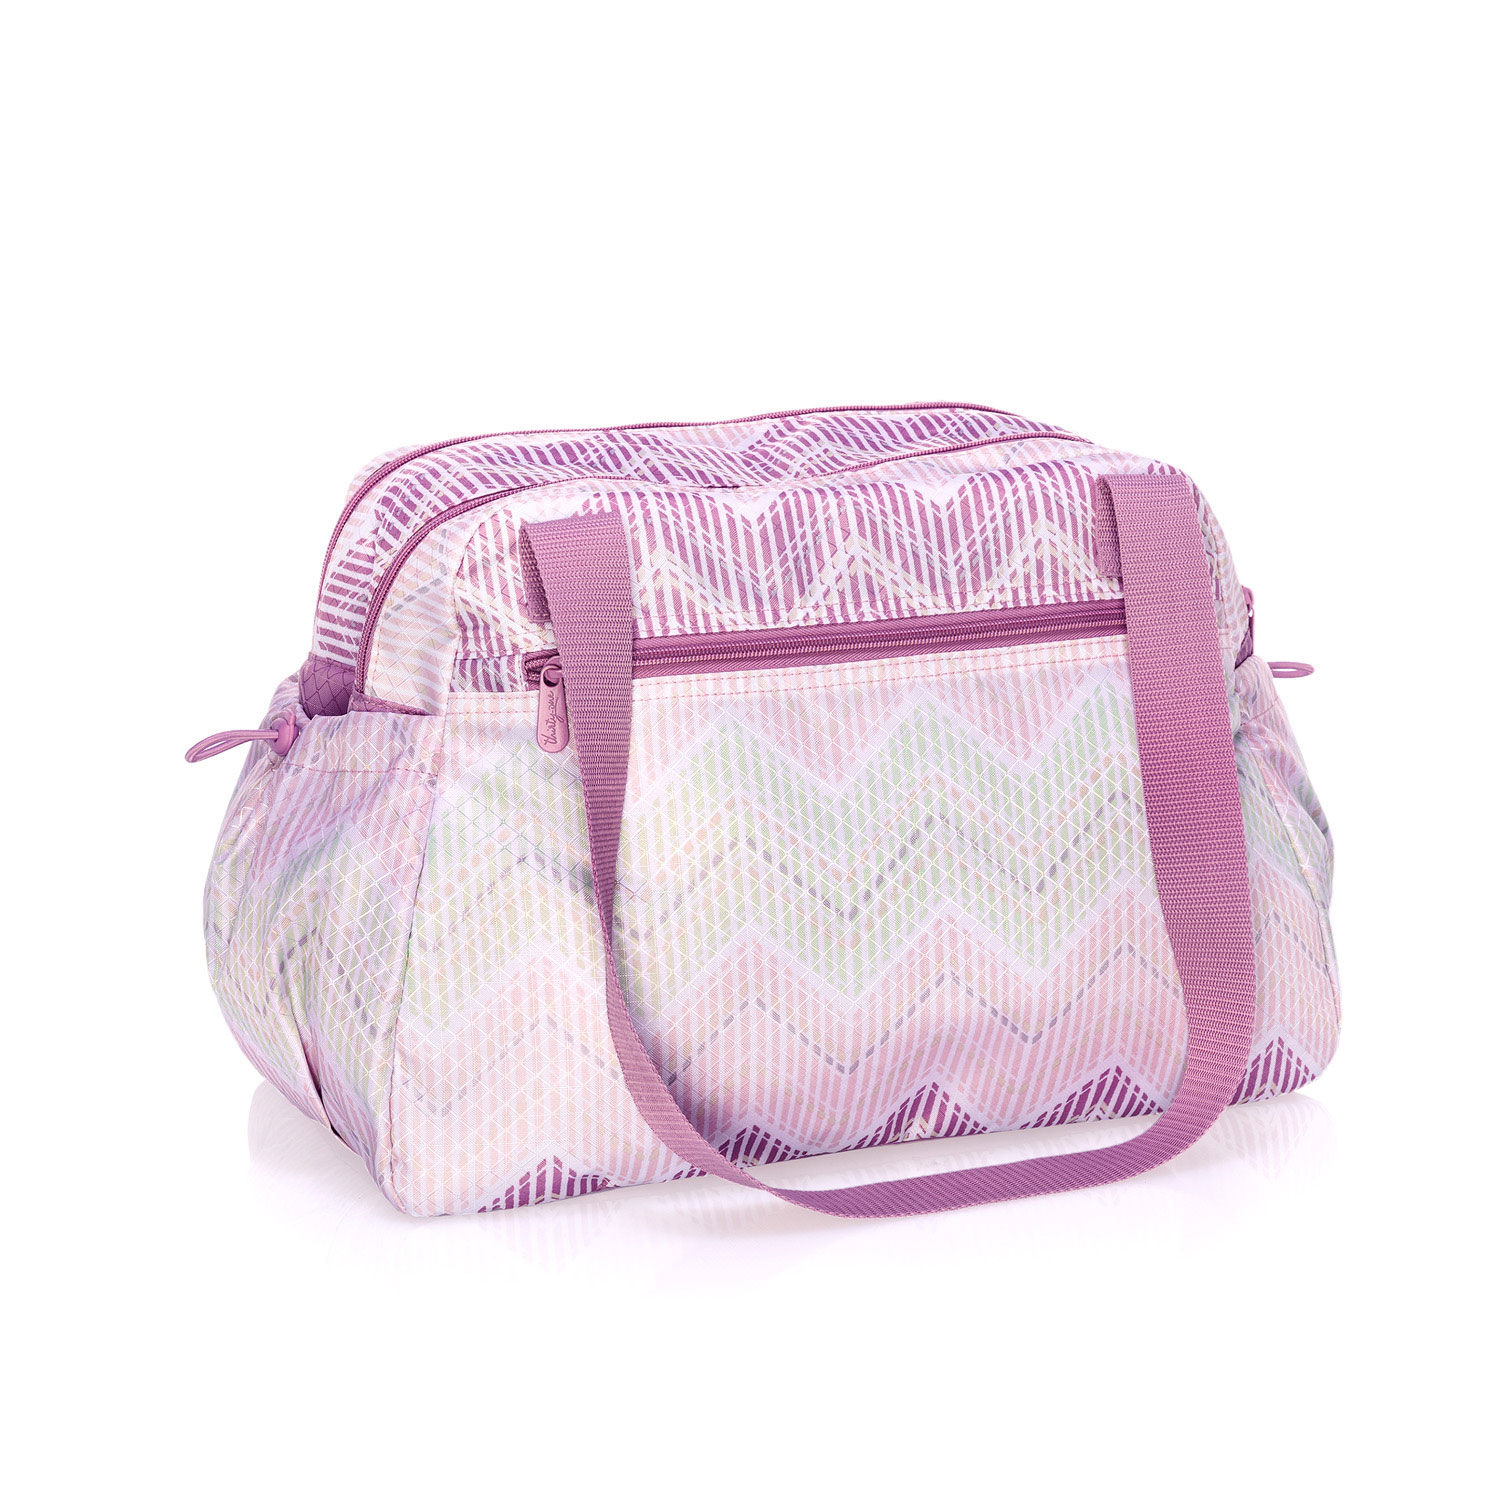 Chevron stitch take the day diaper bag thirty one gifts take the day diaper bag chevron stitch negle Images